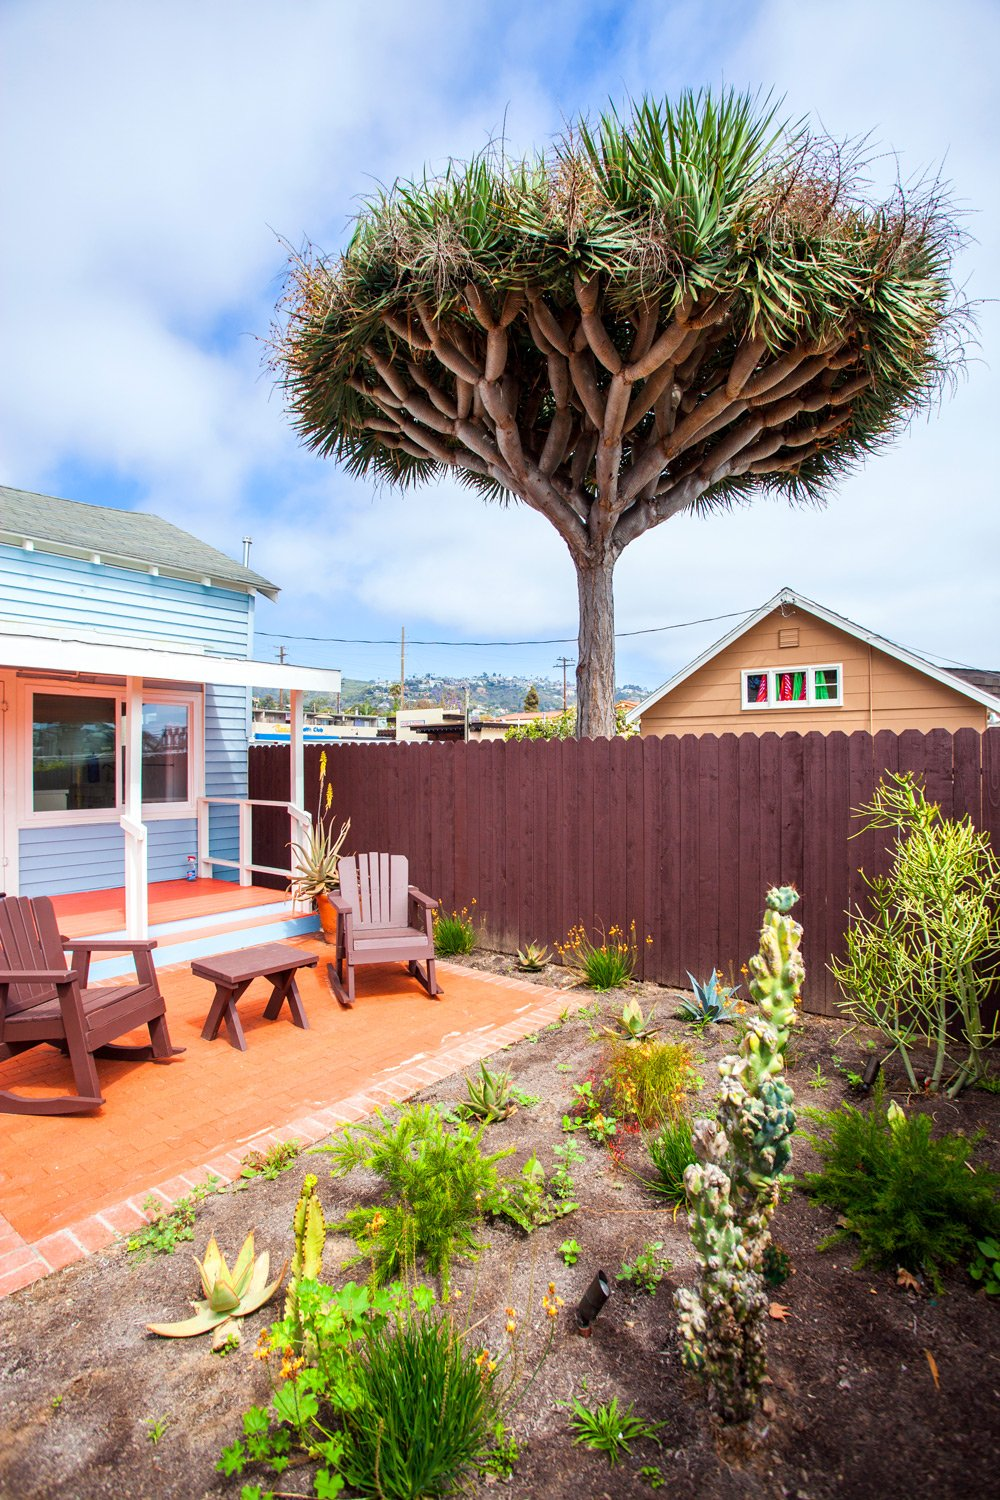 valencia ft of spaces beach cottage only minute last rental la july laguna house cottages deal to rentals plenty patio